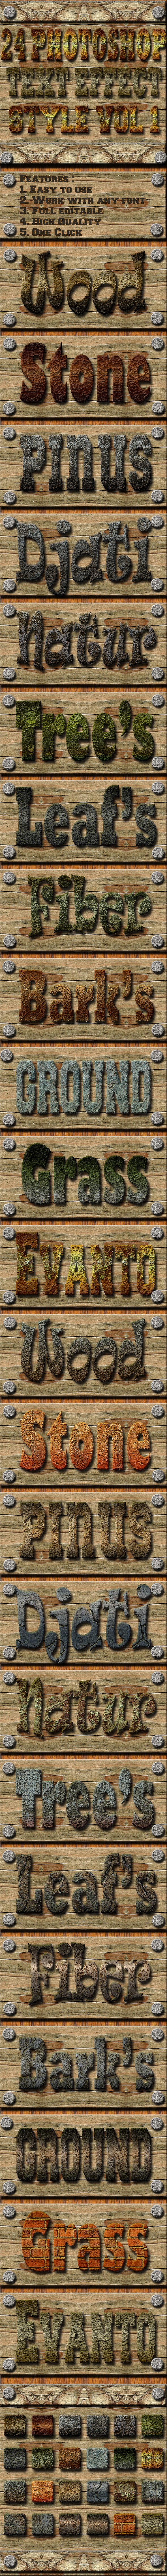 GraphicRiver 24 Photoshop Text Effect Style Vol 1 11977683